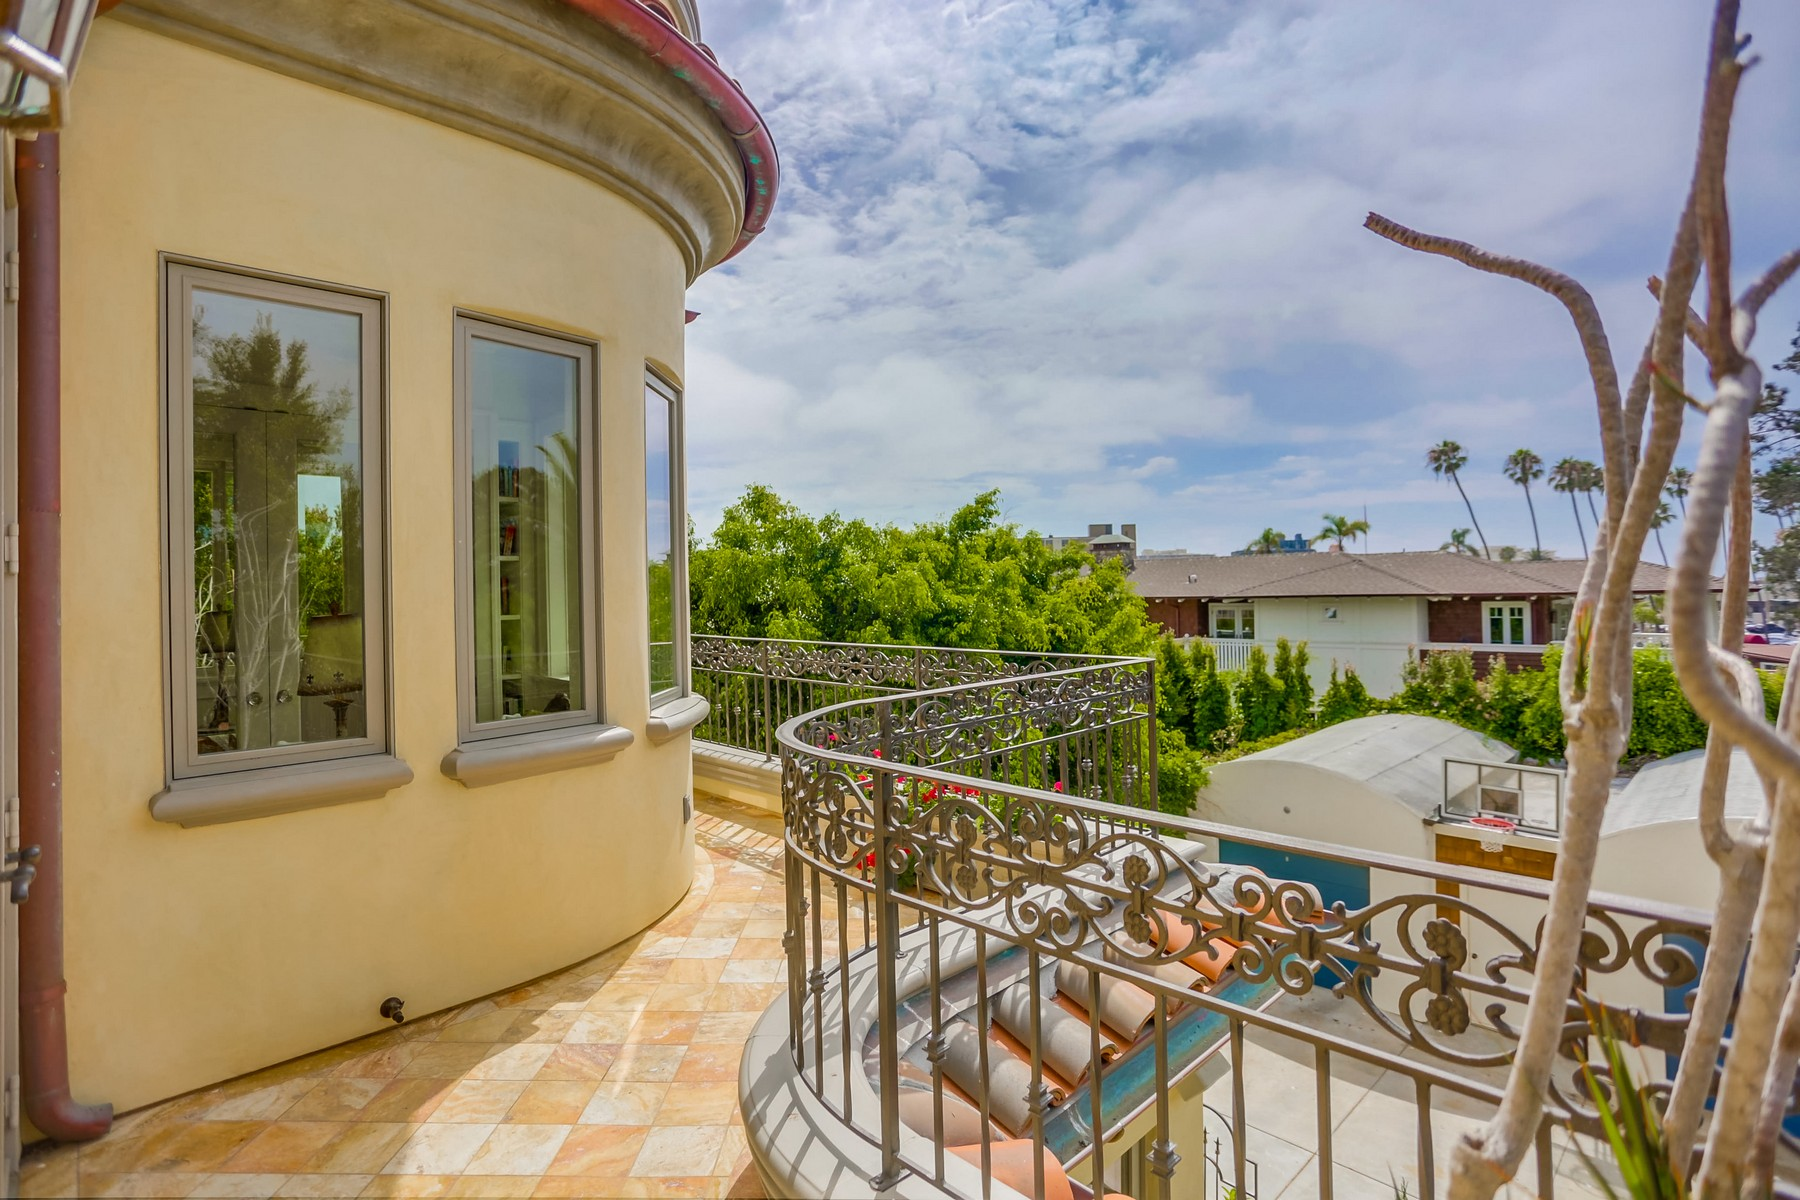 Additional photo for property listing at 7971 Prospect Place  La Jolla, Californie 92037 États-Unis